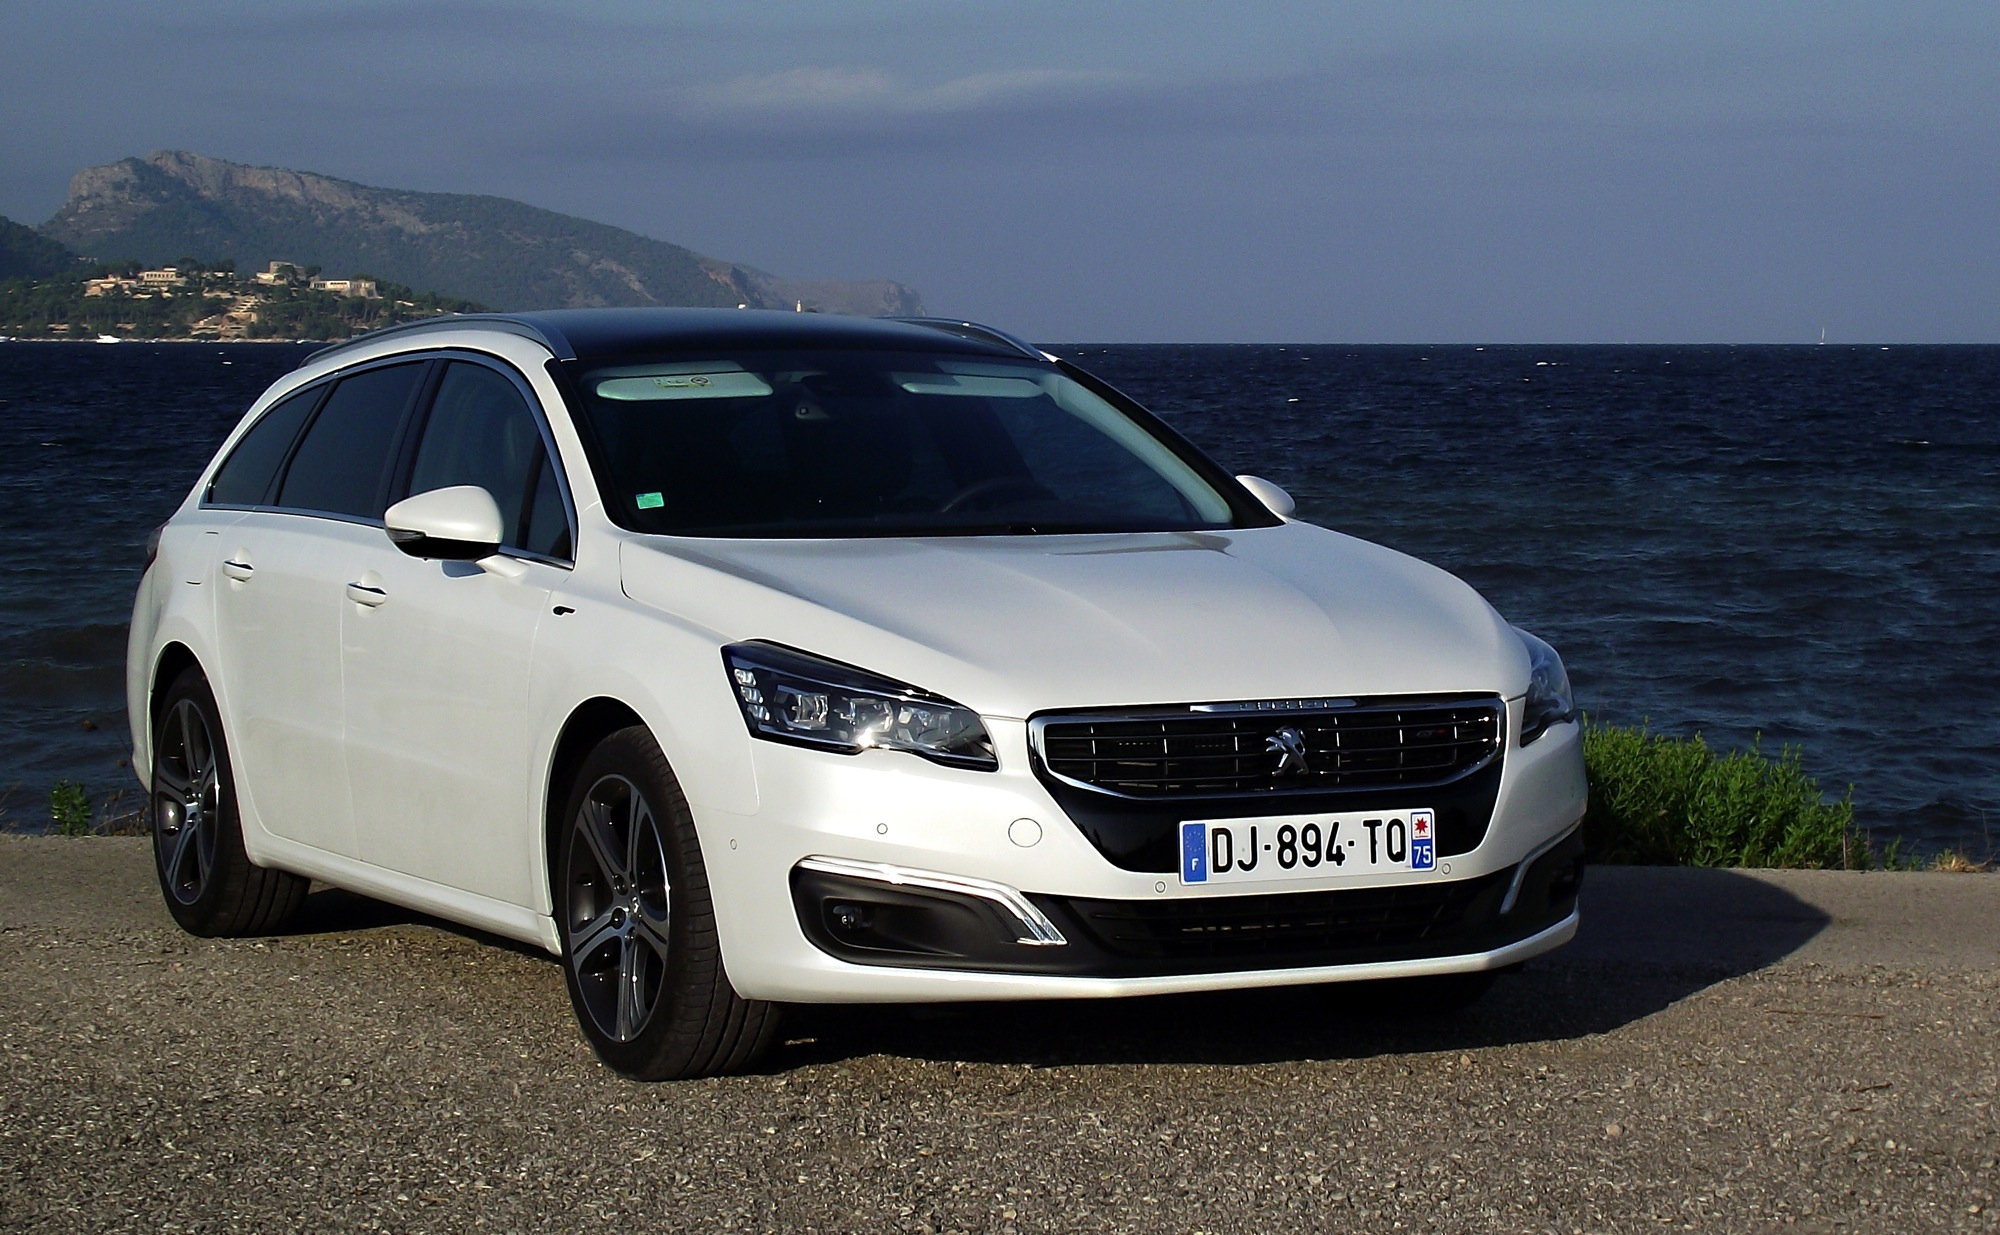 file 2014 peugeot 508 sw gt 2 2 hdi 200 facelift. Black Bedroom Furniture Sets. Home Design Ideas